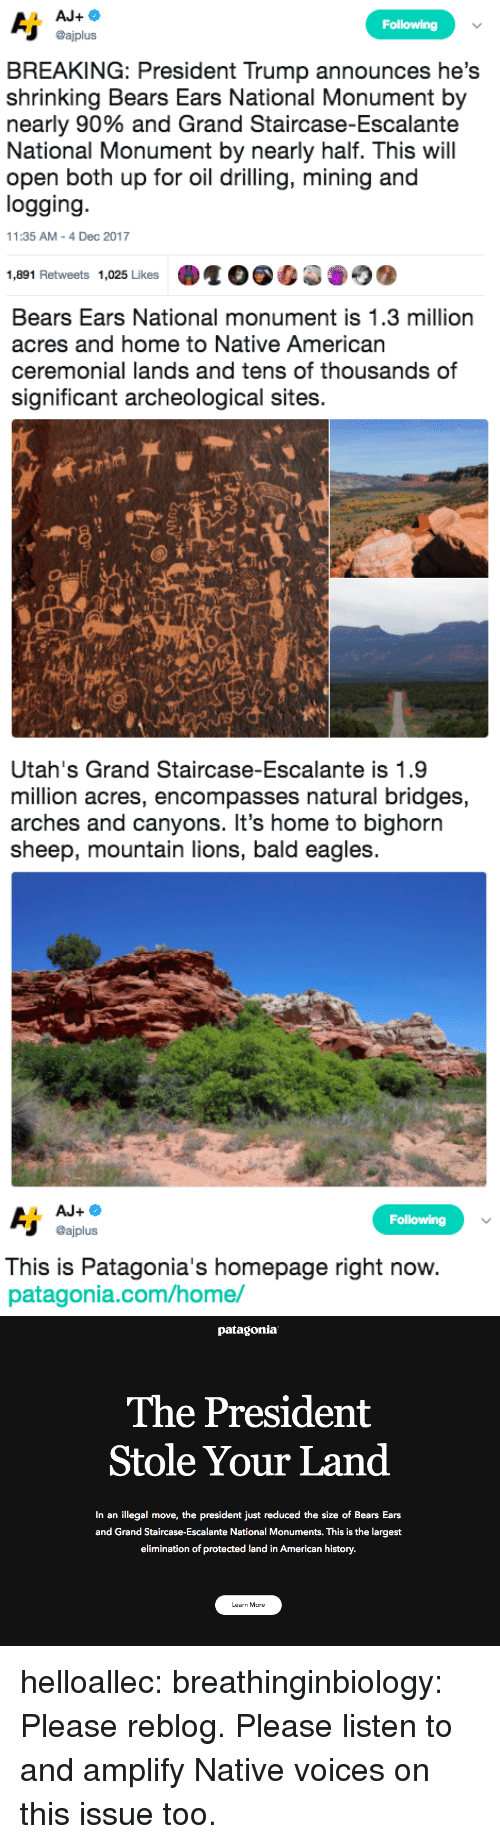 patagonia: Following  @ajplus  BREAKING: President Trump announces he's  shrinking Bears Ears National Monument by  nearly 90% and Grand Staircase-Escalante  National Monument by nearly half. This will  open both up for oil drilling, mining and  logging  11:35 AM-4 Dec 2017  1,891 Retweets 1,025 Likes   Bears Ears National monument is 1.3 million  acres and home to Native American  ceremonial lands and tens of thousands of  significant archeological sites.  sh   Utah's Grand Staircase-Escalante is 1.9  million acres, encompasses natural bridges,  arches and canyons. It's home to bighorn  sheep, mountain lions, bald eagles   Following  @ajplus  This is Patagonia's homepage right now  patagonia.com/home/   patagonia  The President  Stole Your Land  In an illegal move, the president just reduced the size of Bears Ears  and Grand Staircase-Escalante National Monuments. This is the largest  elimination of protected land in American history.  Learn More helloallec: breathinginbiology: Please reblog.  Please listen to and amplify Native voices on this issue too.